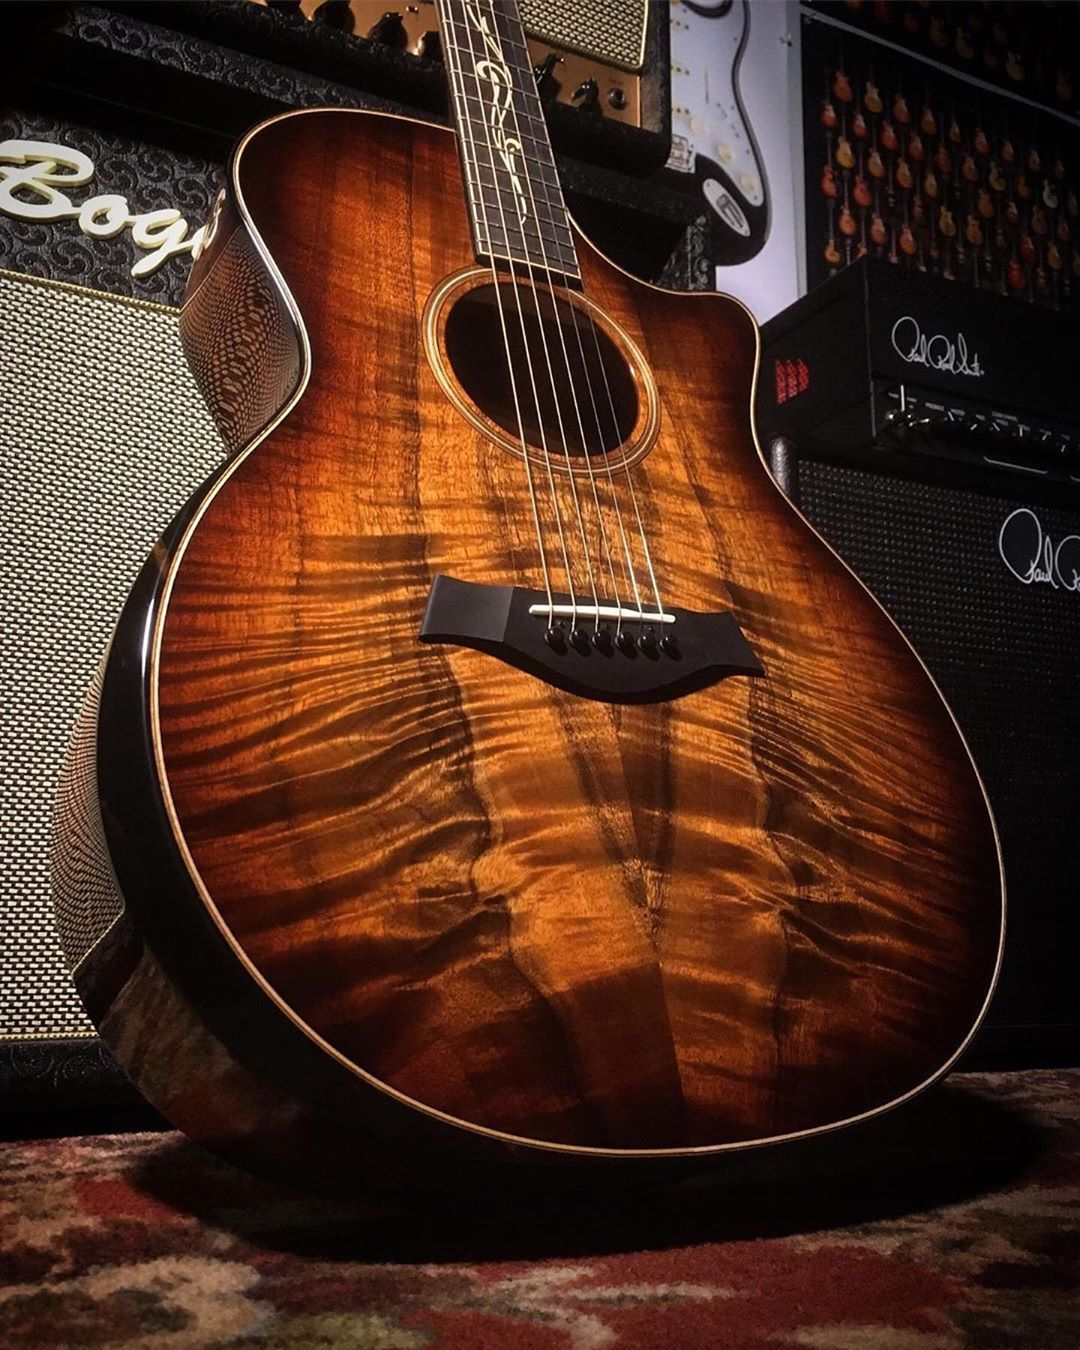 Taylor Guitars On Instagram Daily Taylordealer Koa Fans We Re Excited To Share This K24ce D Taylor Guitars Acoustic Acoustic Guitar Music Taylor Guitars